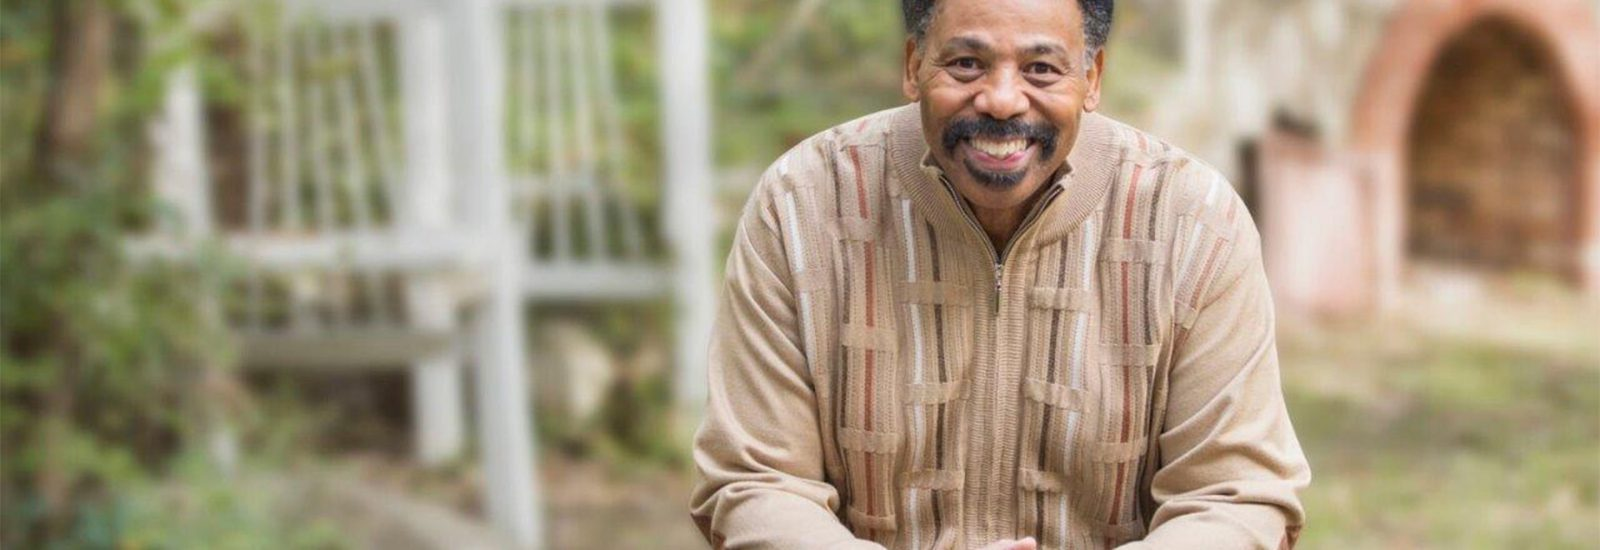 Tony Evans Becomes the First Sole African American to Author a Study Bible